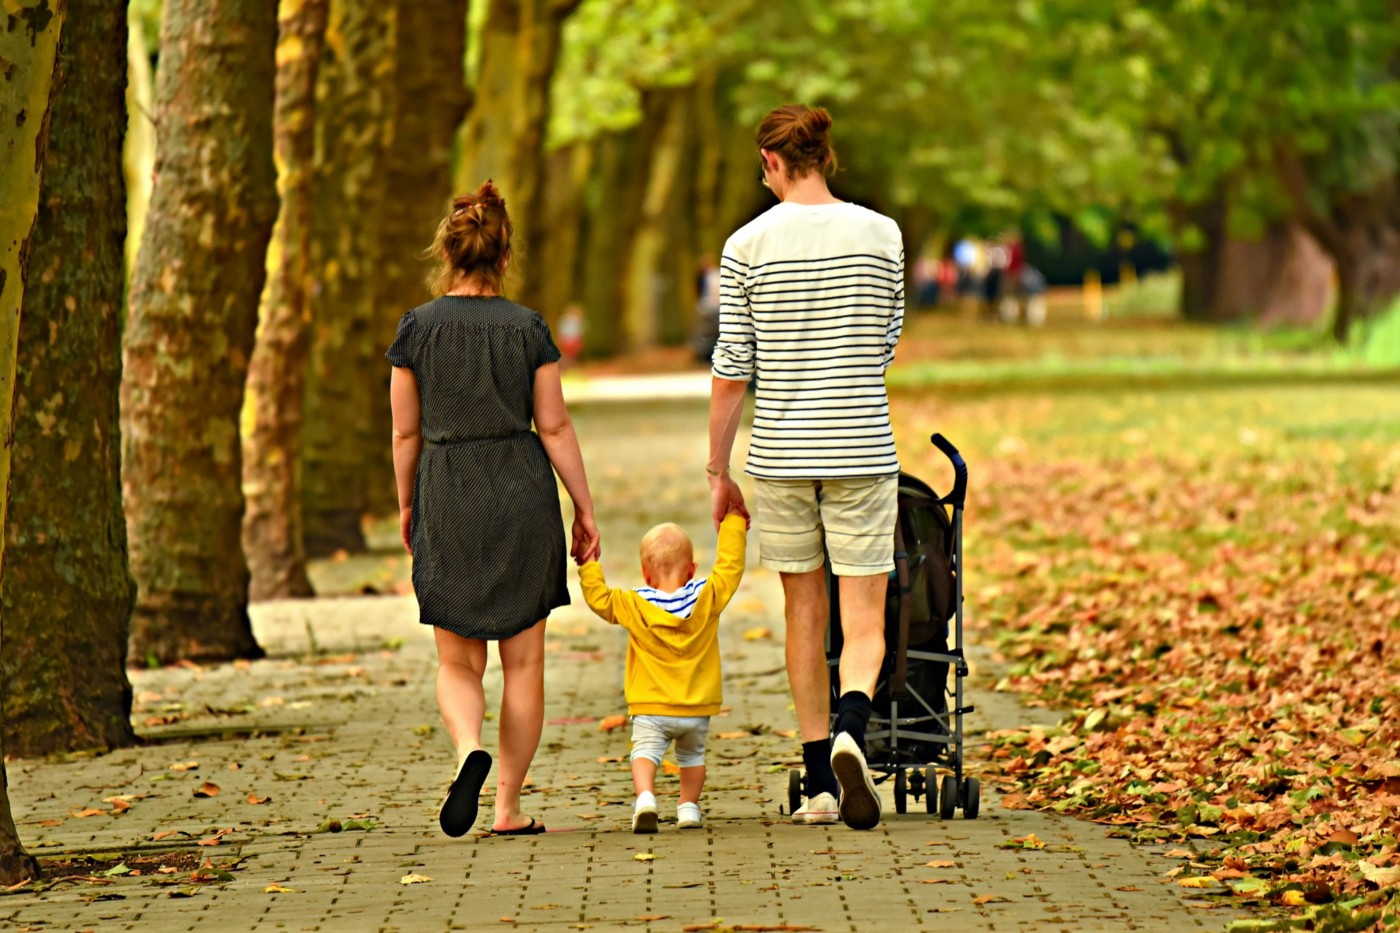 Young woman and man walking in a park in the fall and holding hands with a toddler in a yellow jacket walking between them.